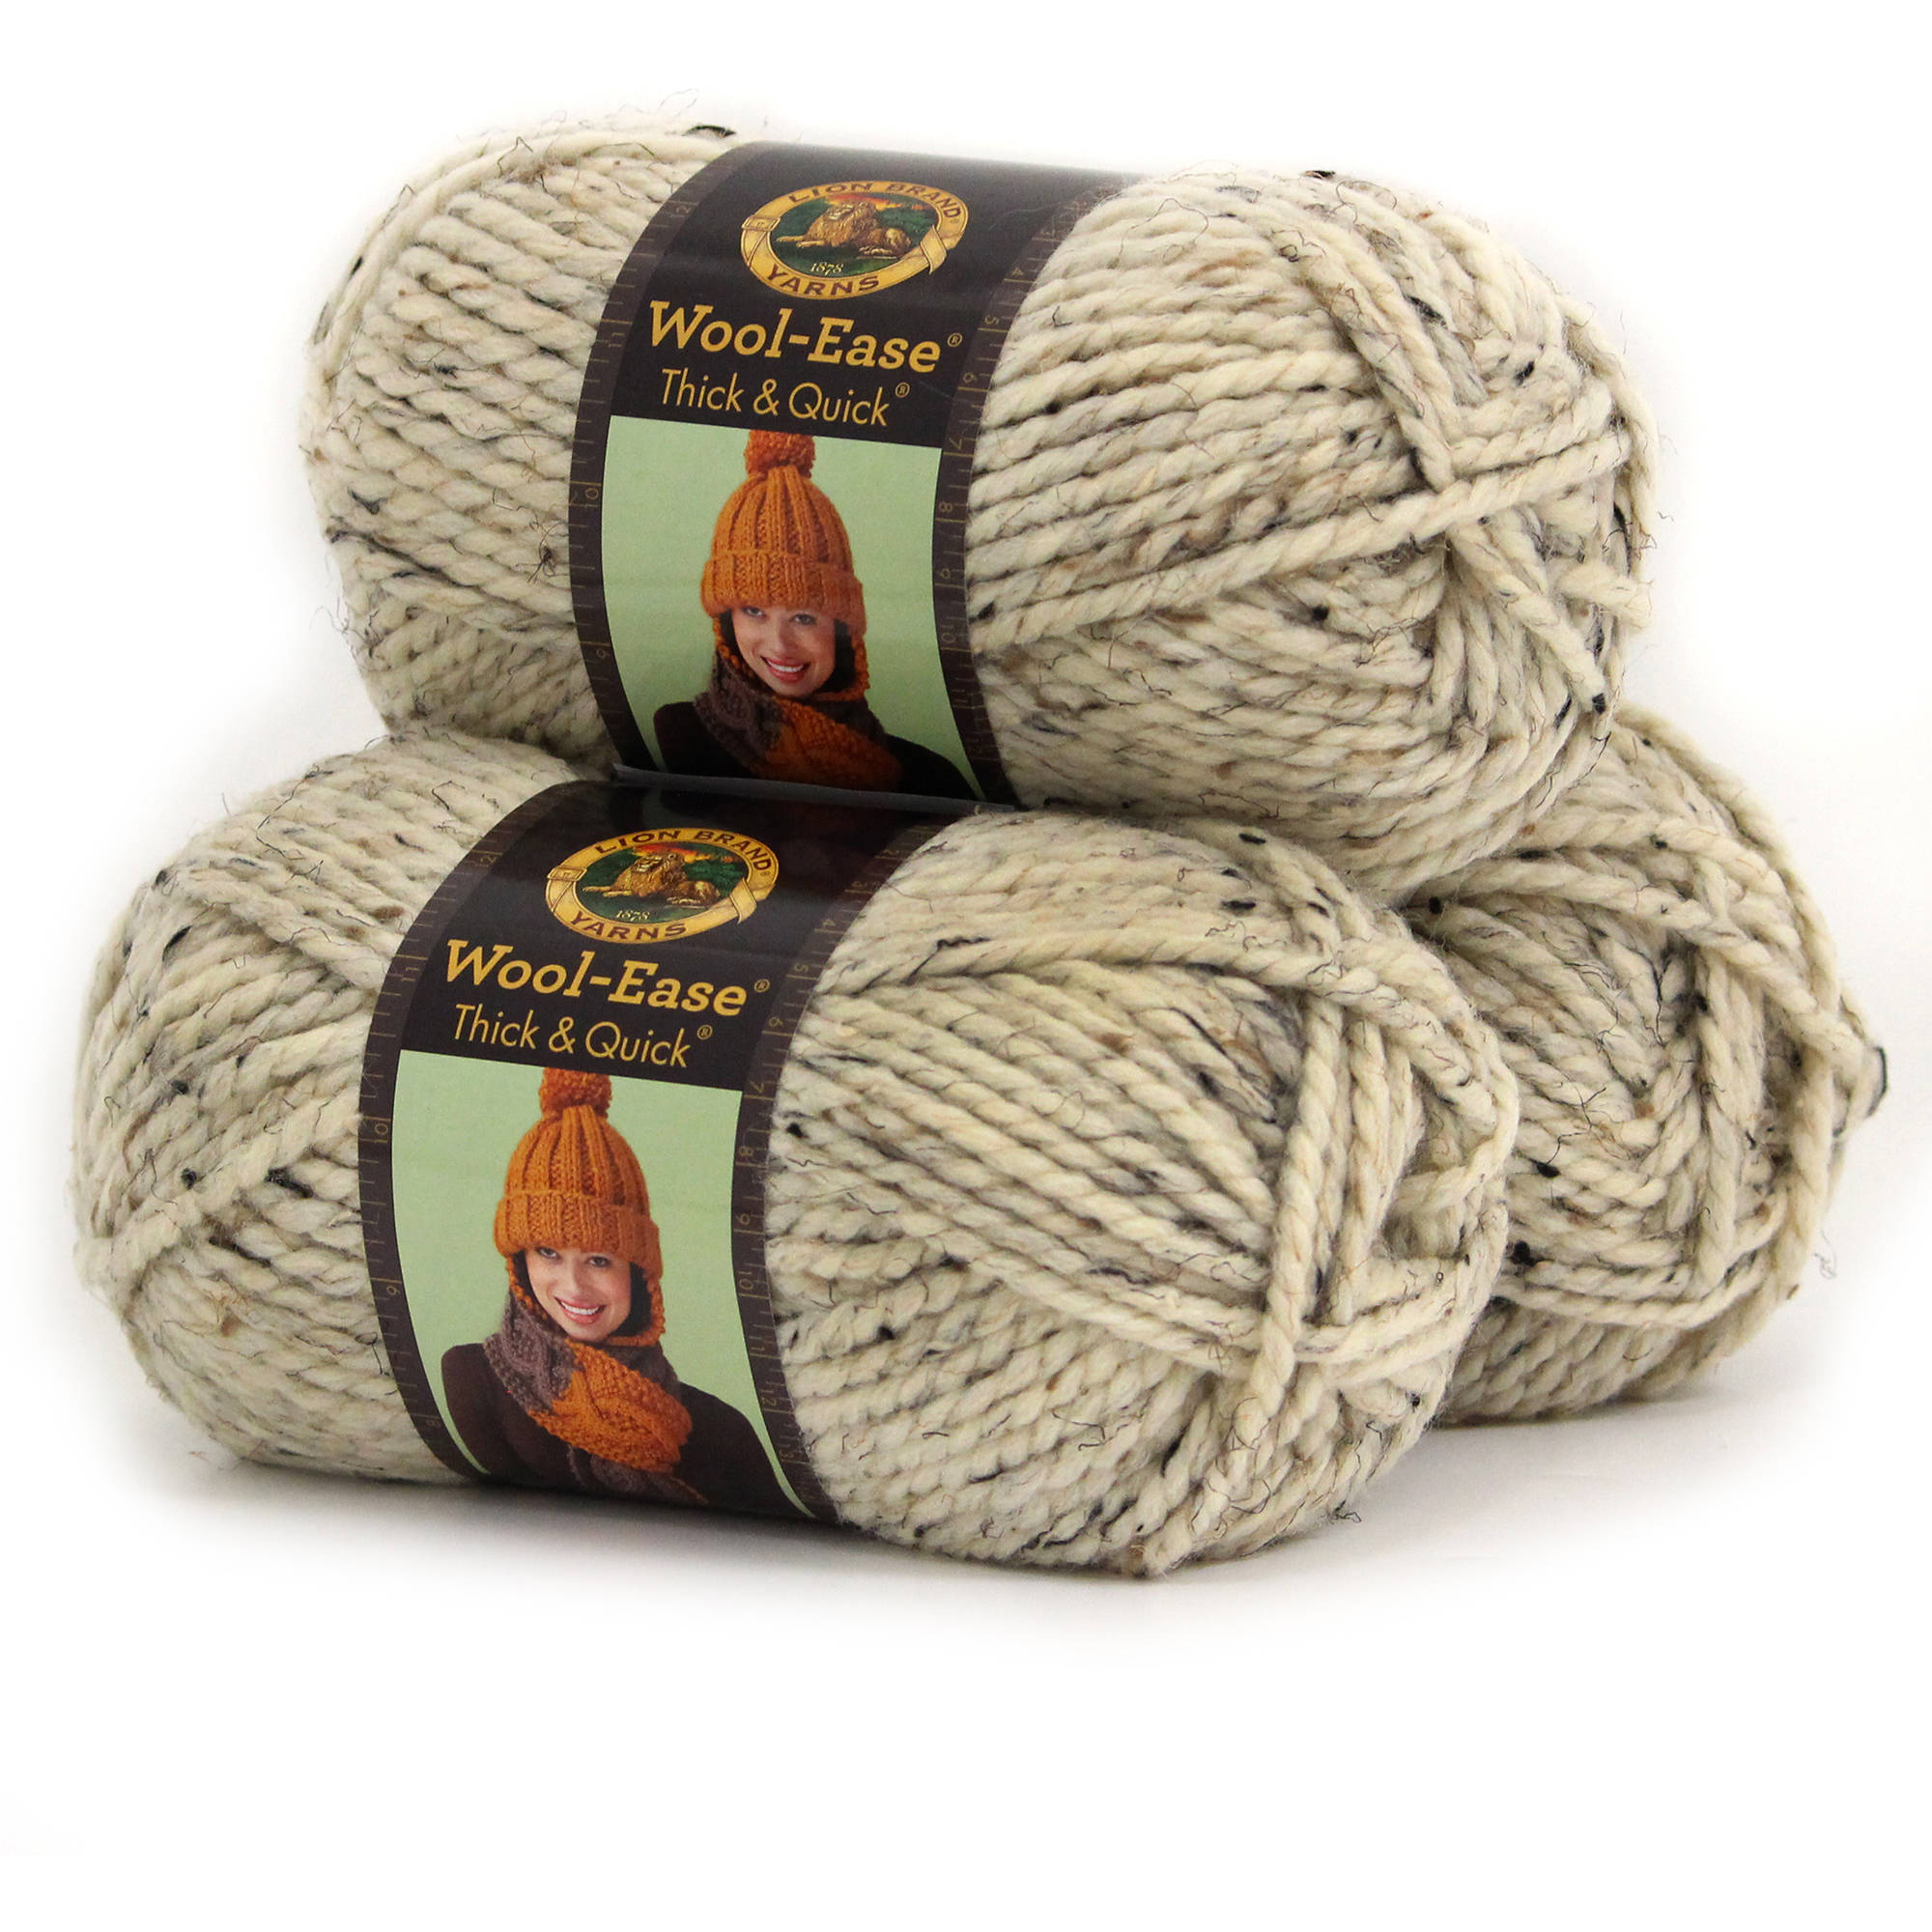 Lion Brand Wool Ease Thick and Quick Yarn, Wool/Acrylic Blend, Pack of 3